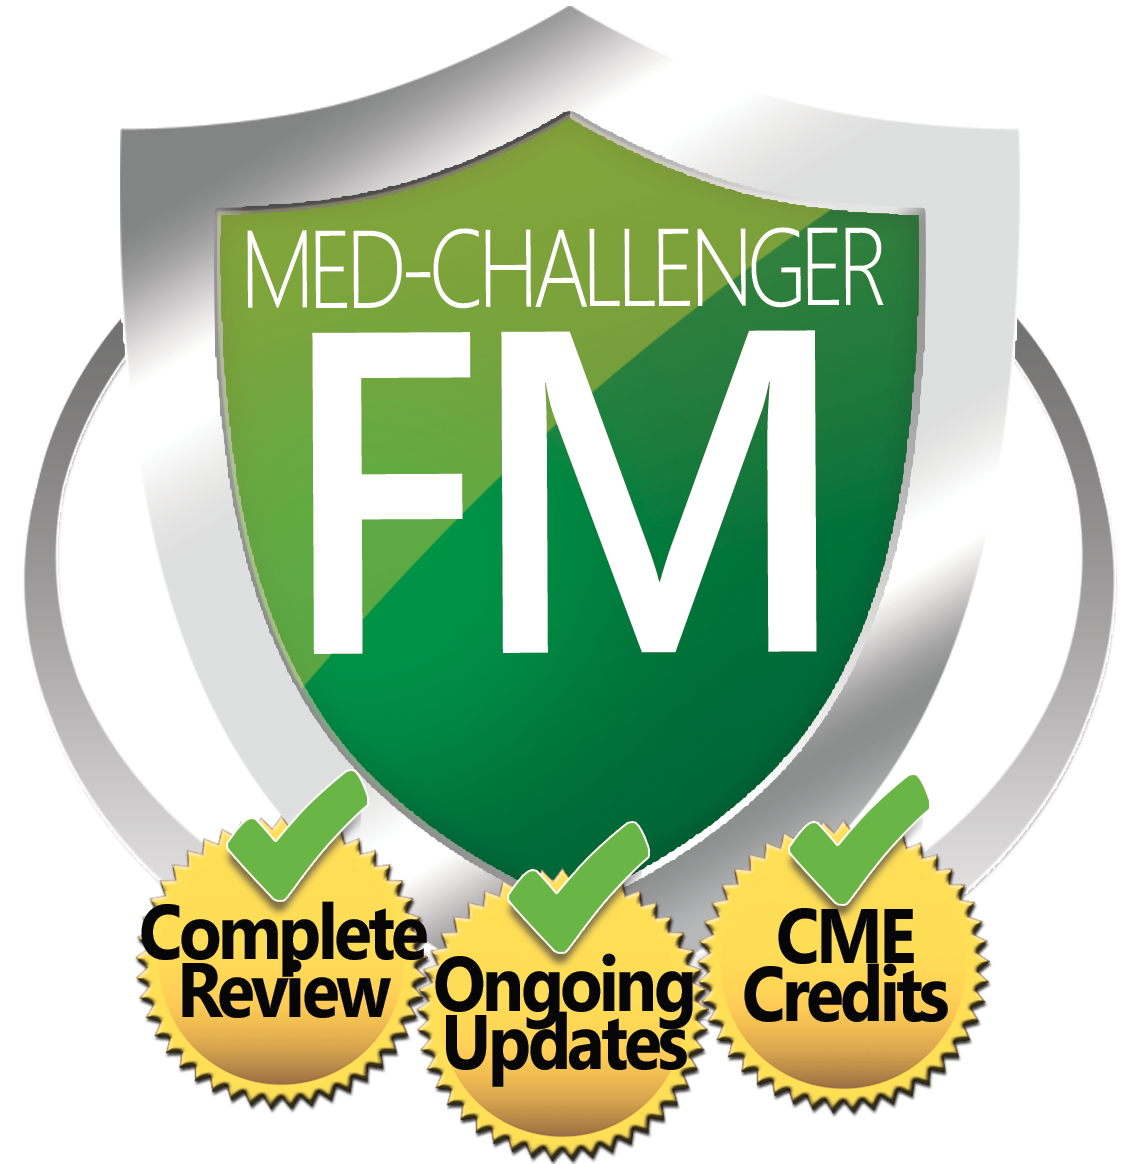 Emergency Medicine Board Review, Med-Challenger EM, Complete Review, Ongoing Updates, CME Credits